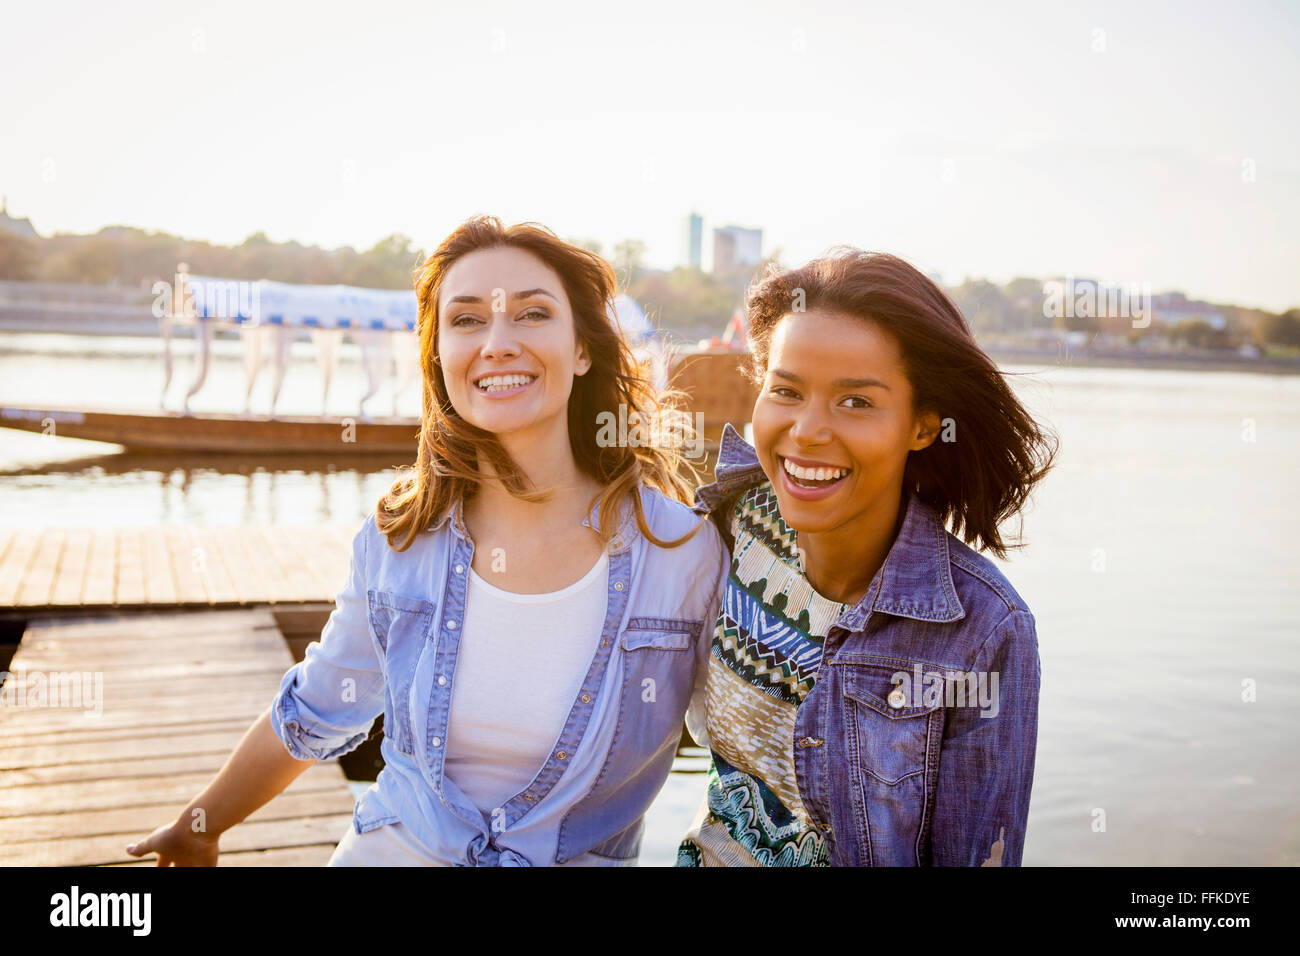 Portrait of two women laughing on a city break Stock Photo